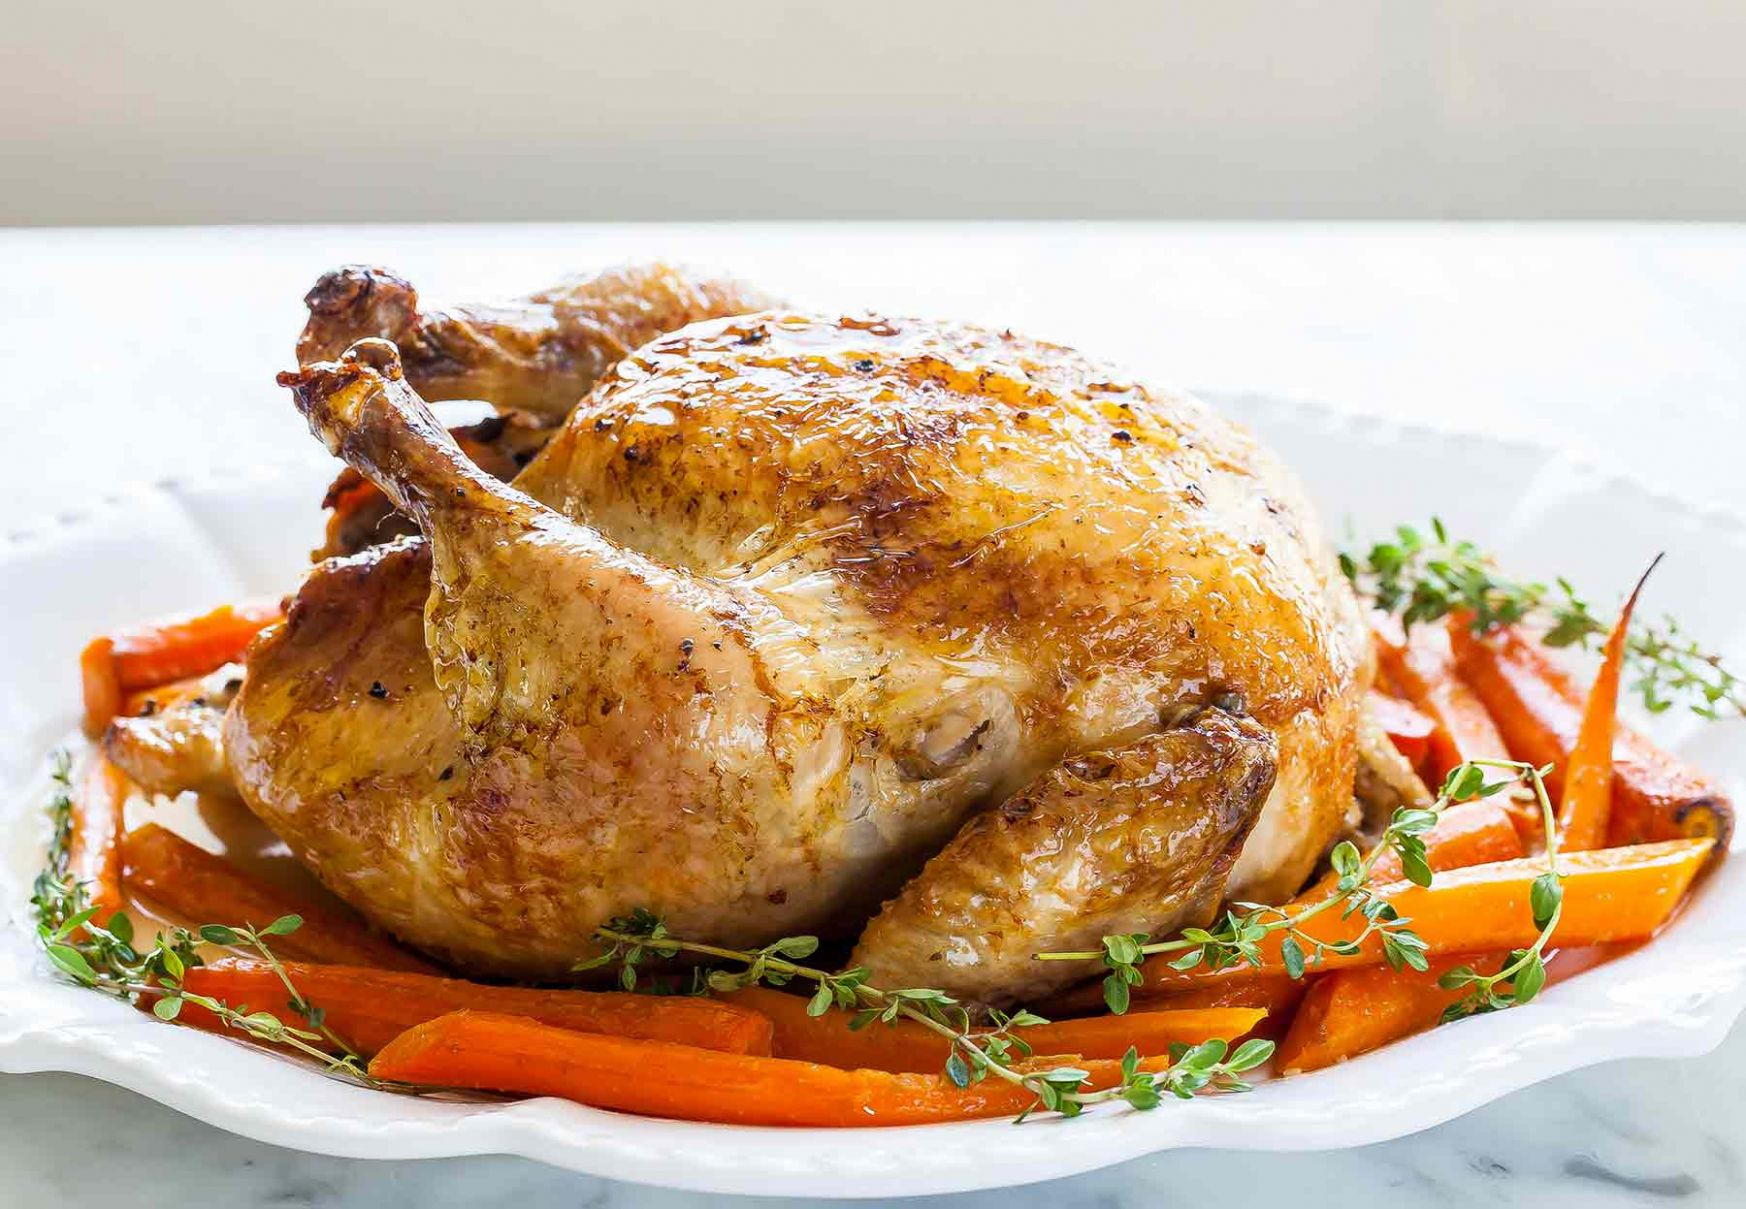 Roast Chicken with Carrots - Simple Recipes Roast Chicken